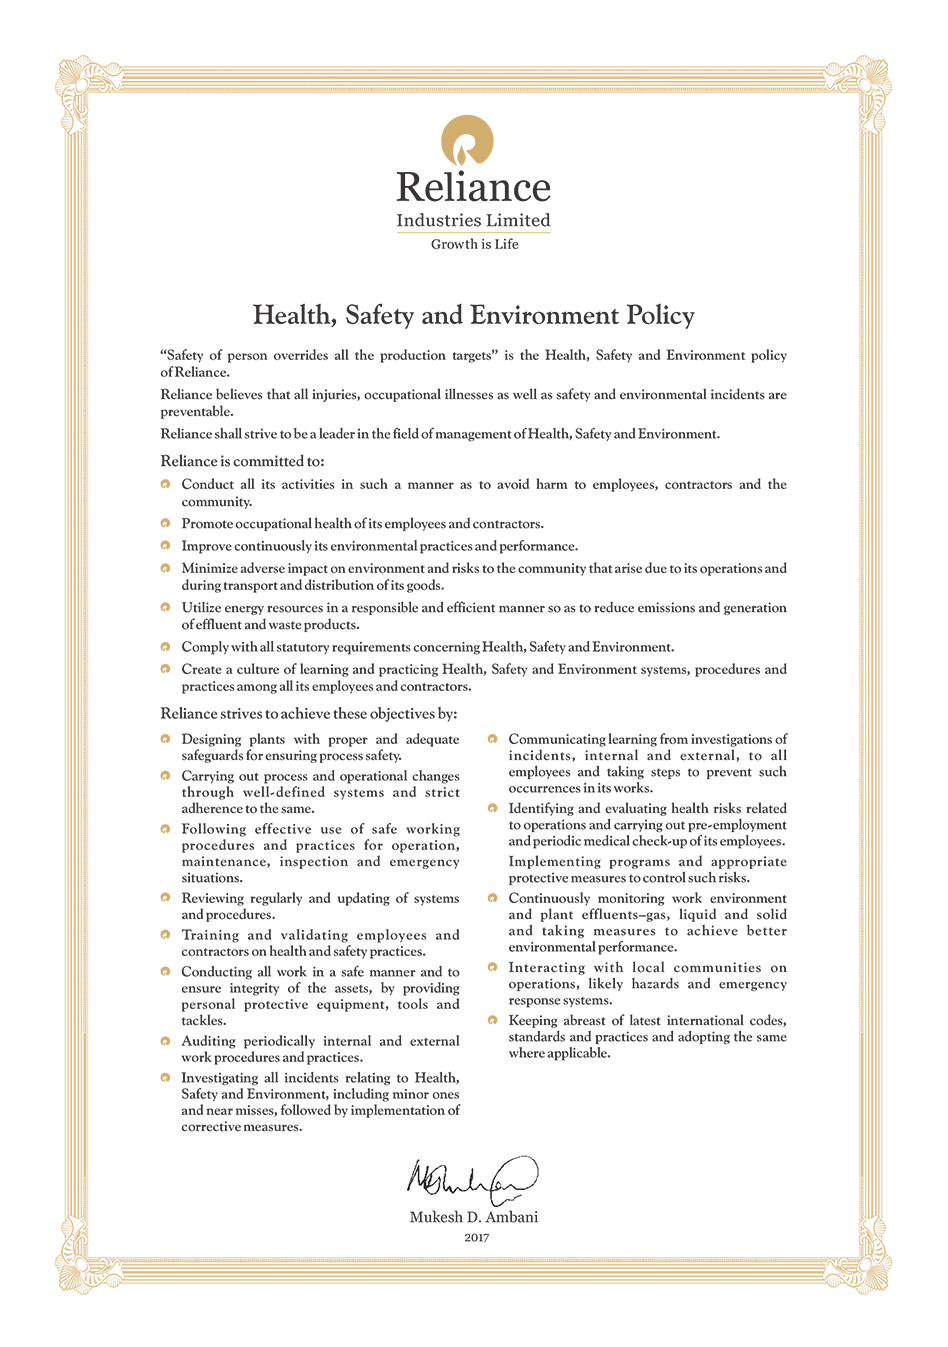 Health, Safety & Environment :: Reliance Industries Limited